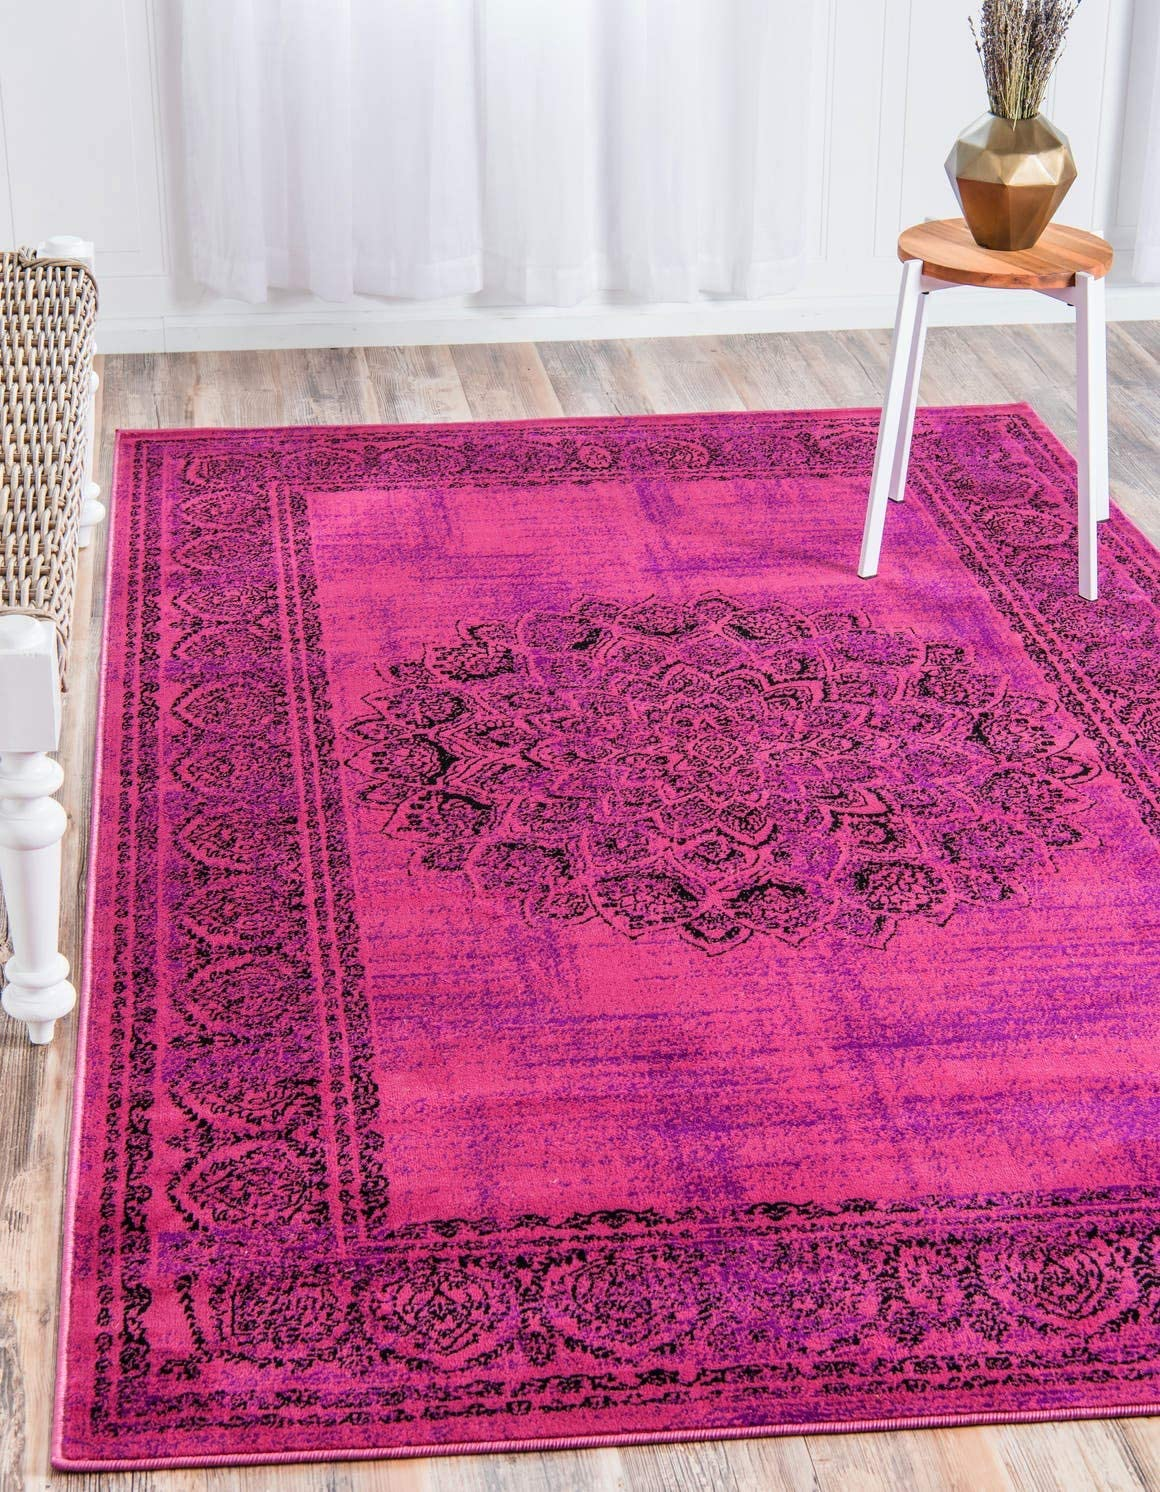 Unique Loom Imperial Collection Modern Traditional Vintage Distressed Fuchsia Area Rug 2 0 x 3 0